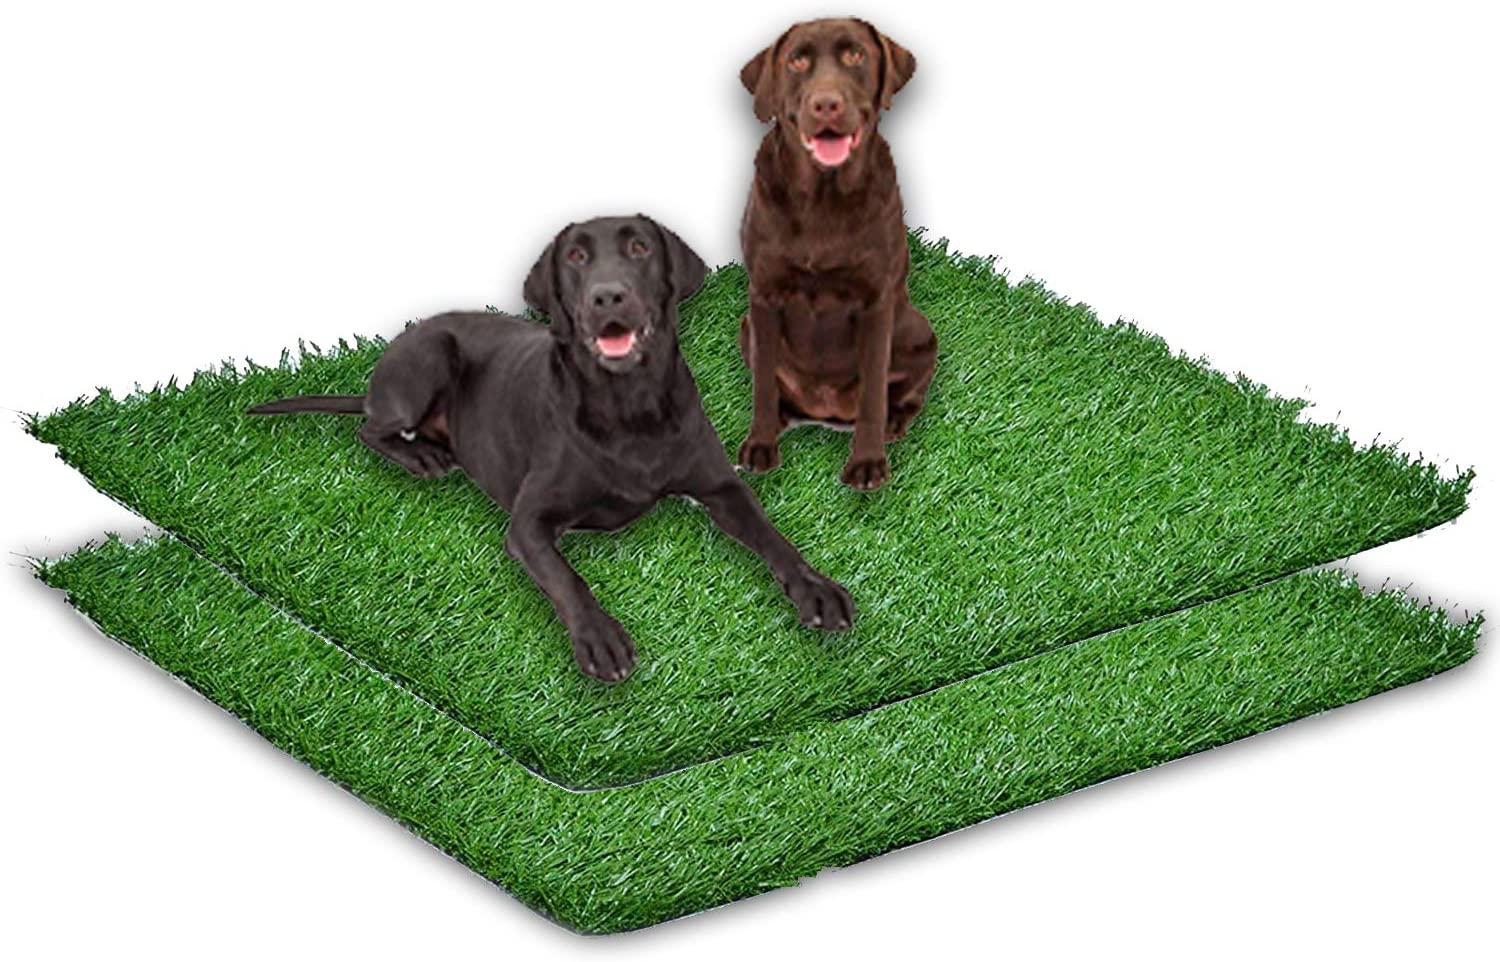 DUOITA Artificial Grass Cheap SALE Direct sale of manufacturer Start Rug Turf for Dogs Indoor Gr Fake Outdoor